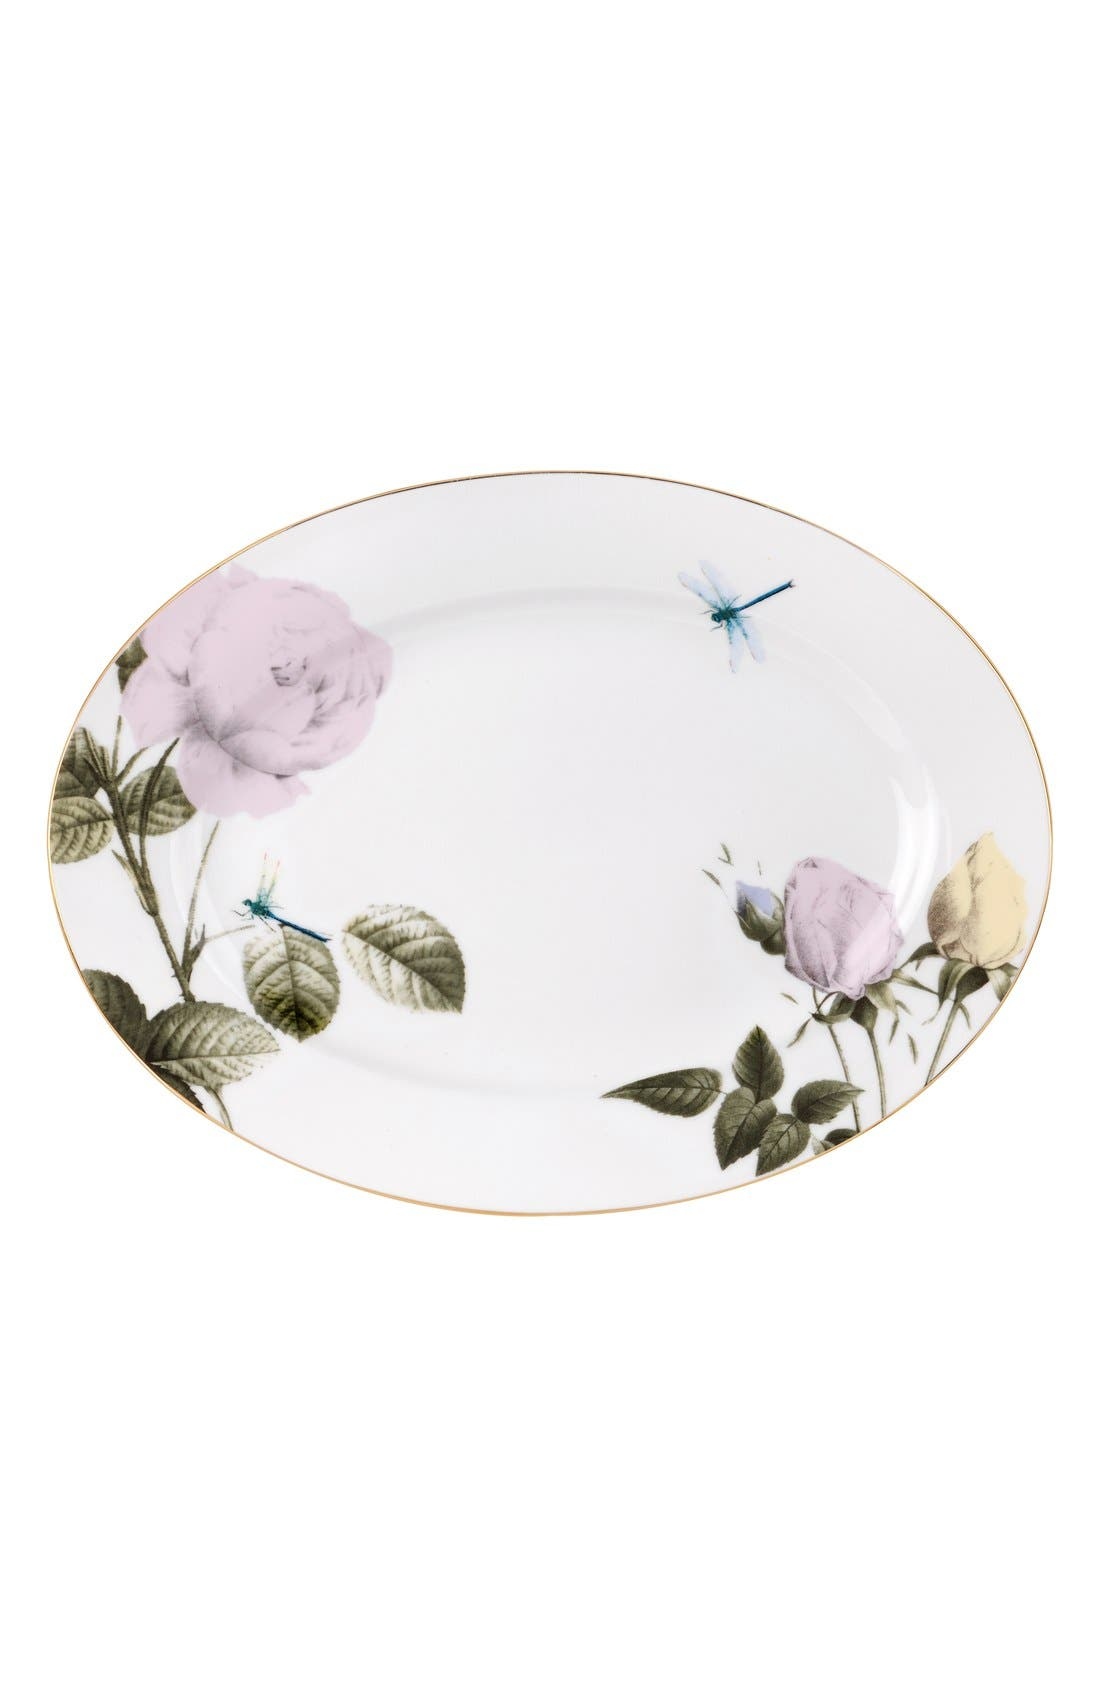 Main Image - Portmeirion x Ted Baker 'Rosie Lee' Oval China Platter